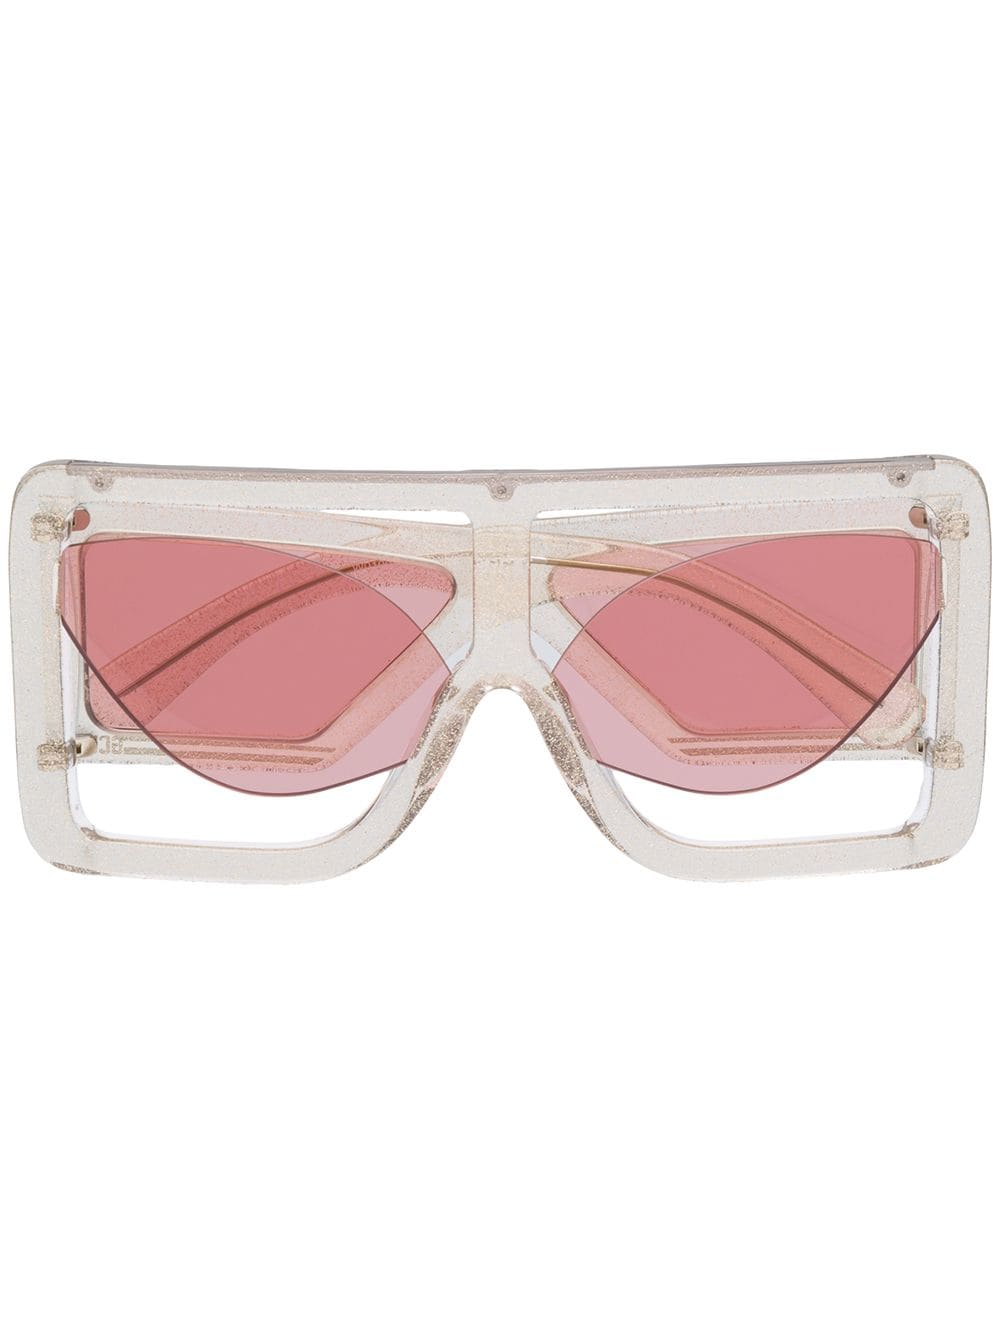 1b3fdb1a269ba Pink Cat-Eye Sunglasses - GCDS - Russocapri